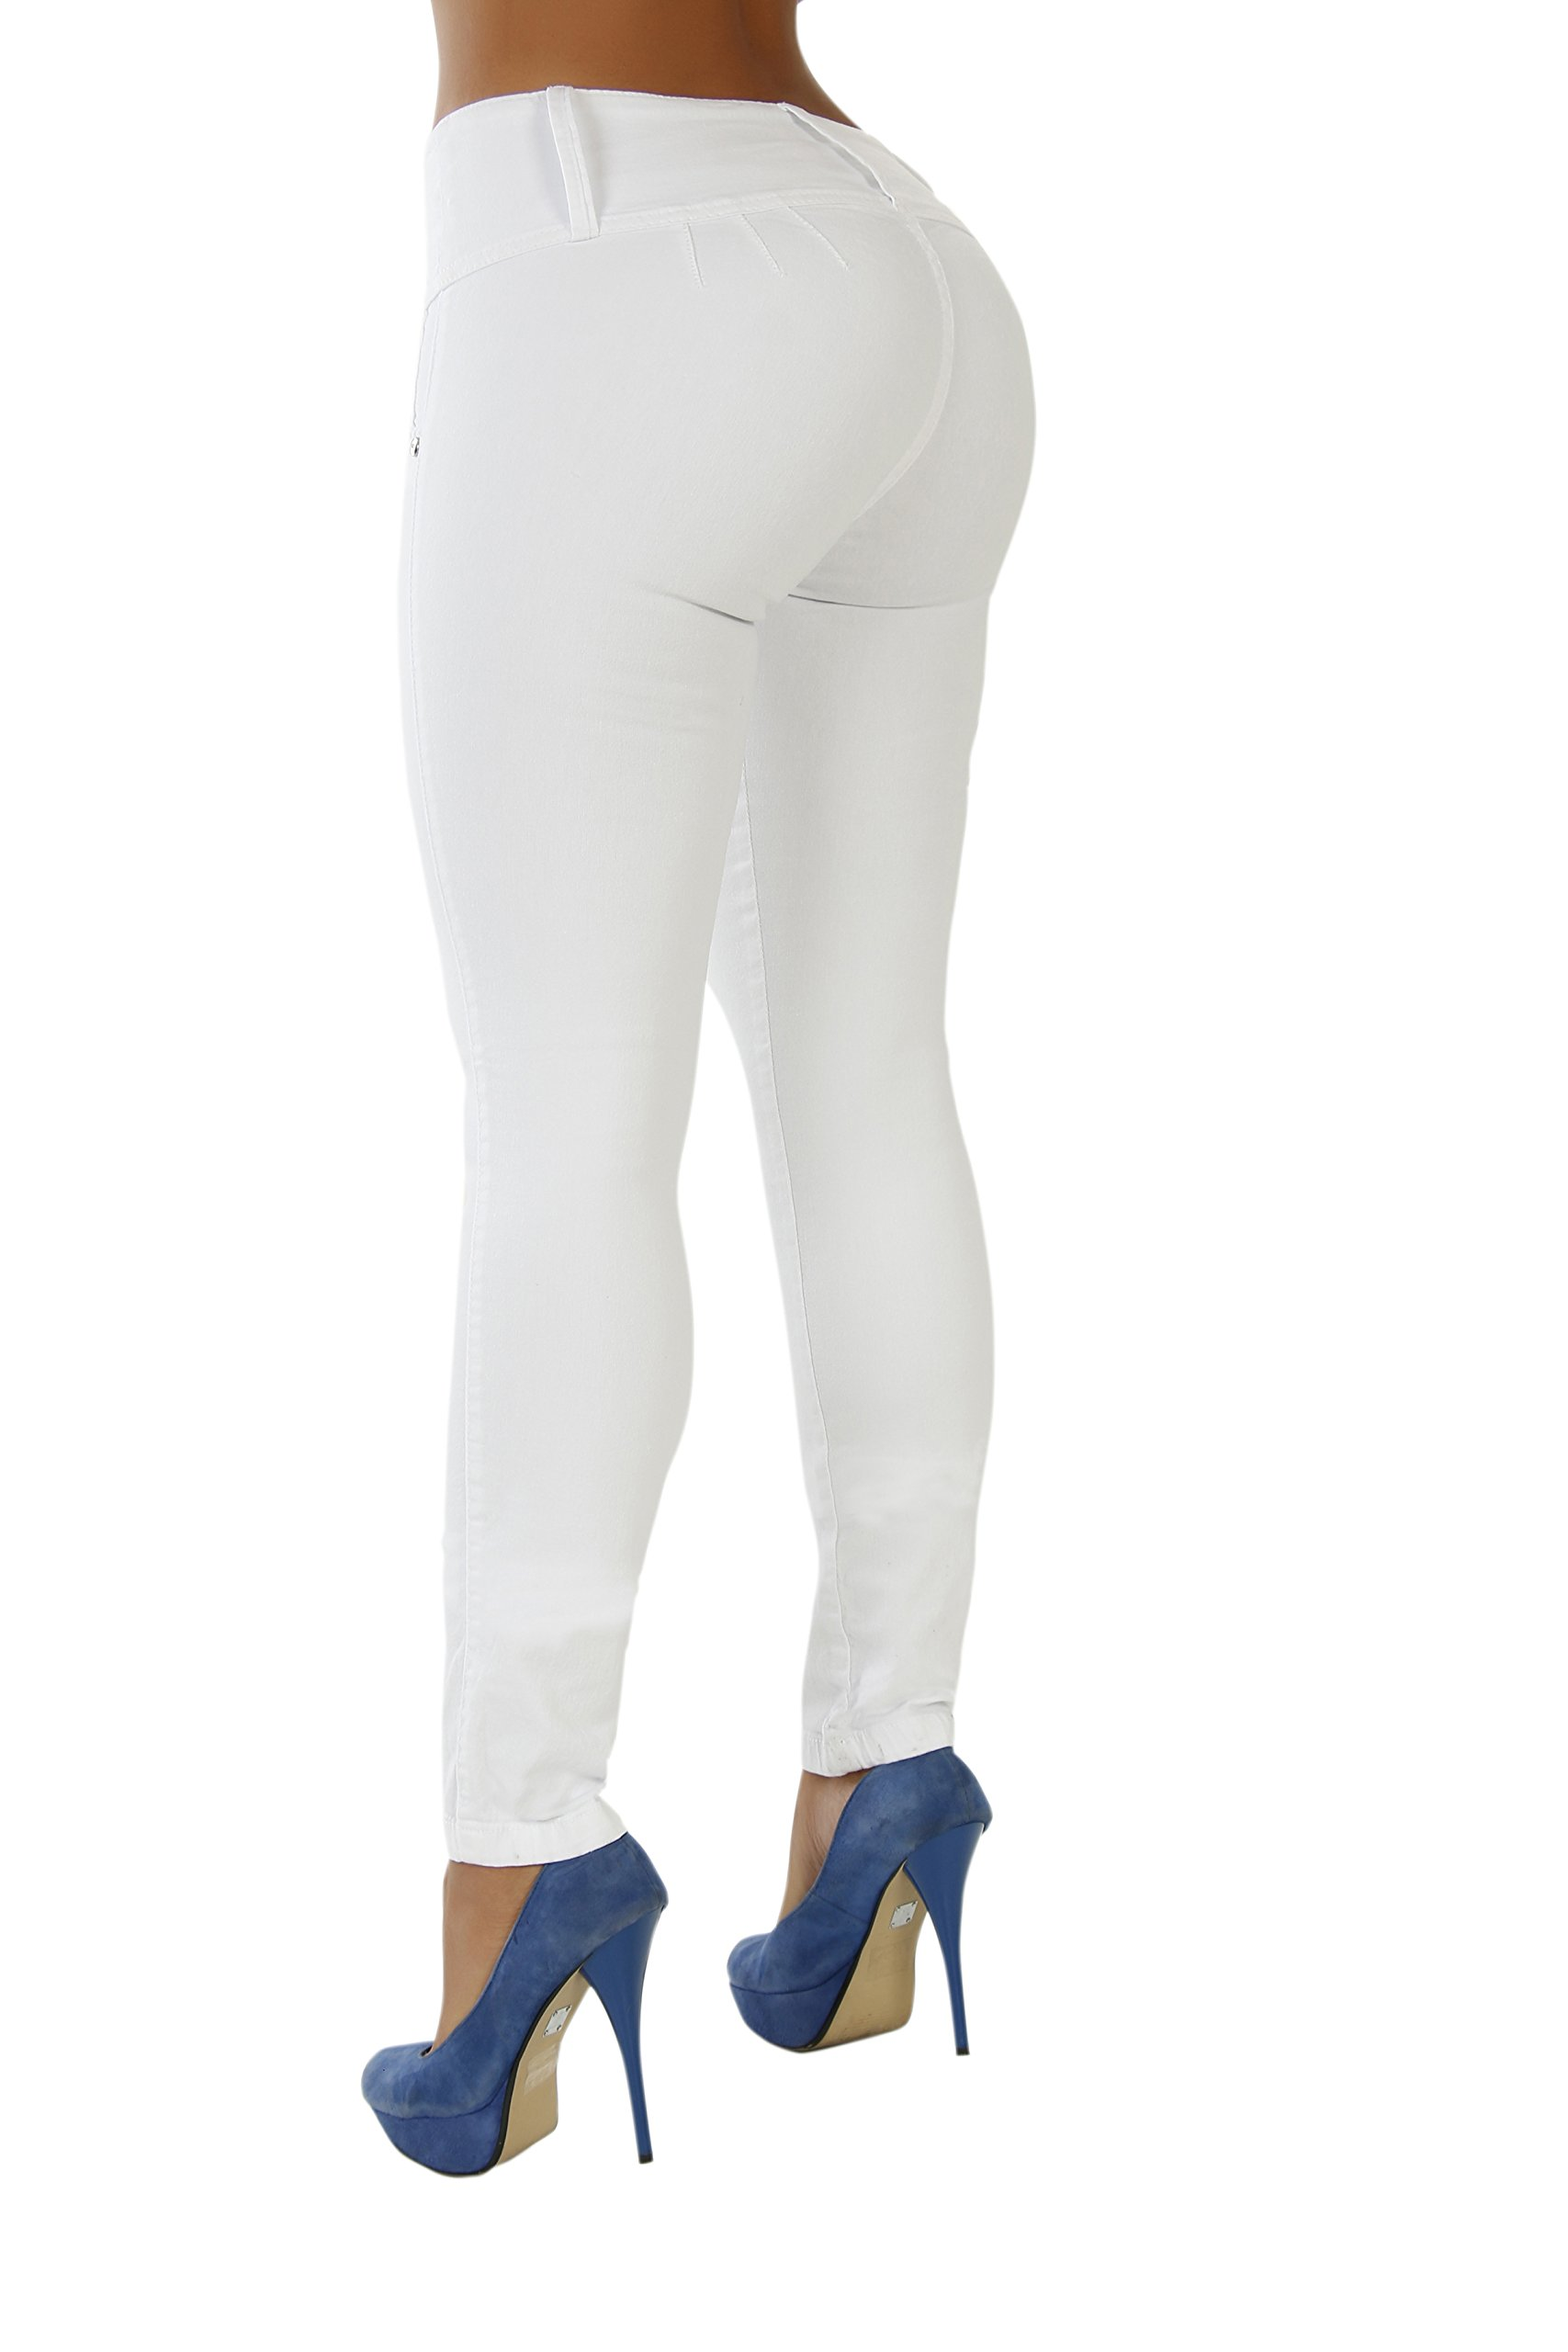 Curvify Stretch Jean 767 - A Butt Lifting Skinny Jeans for Women - No Back Pockets (767, White, 5)